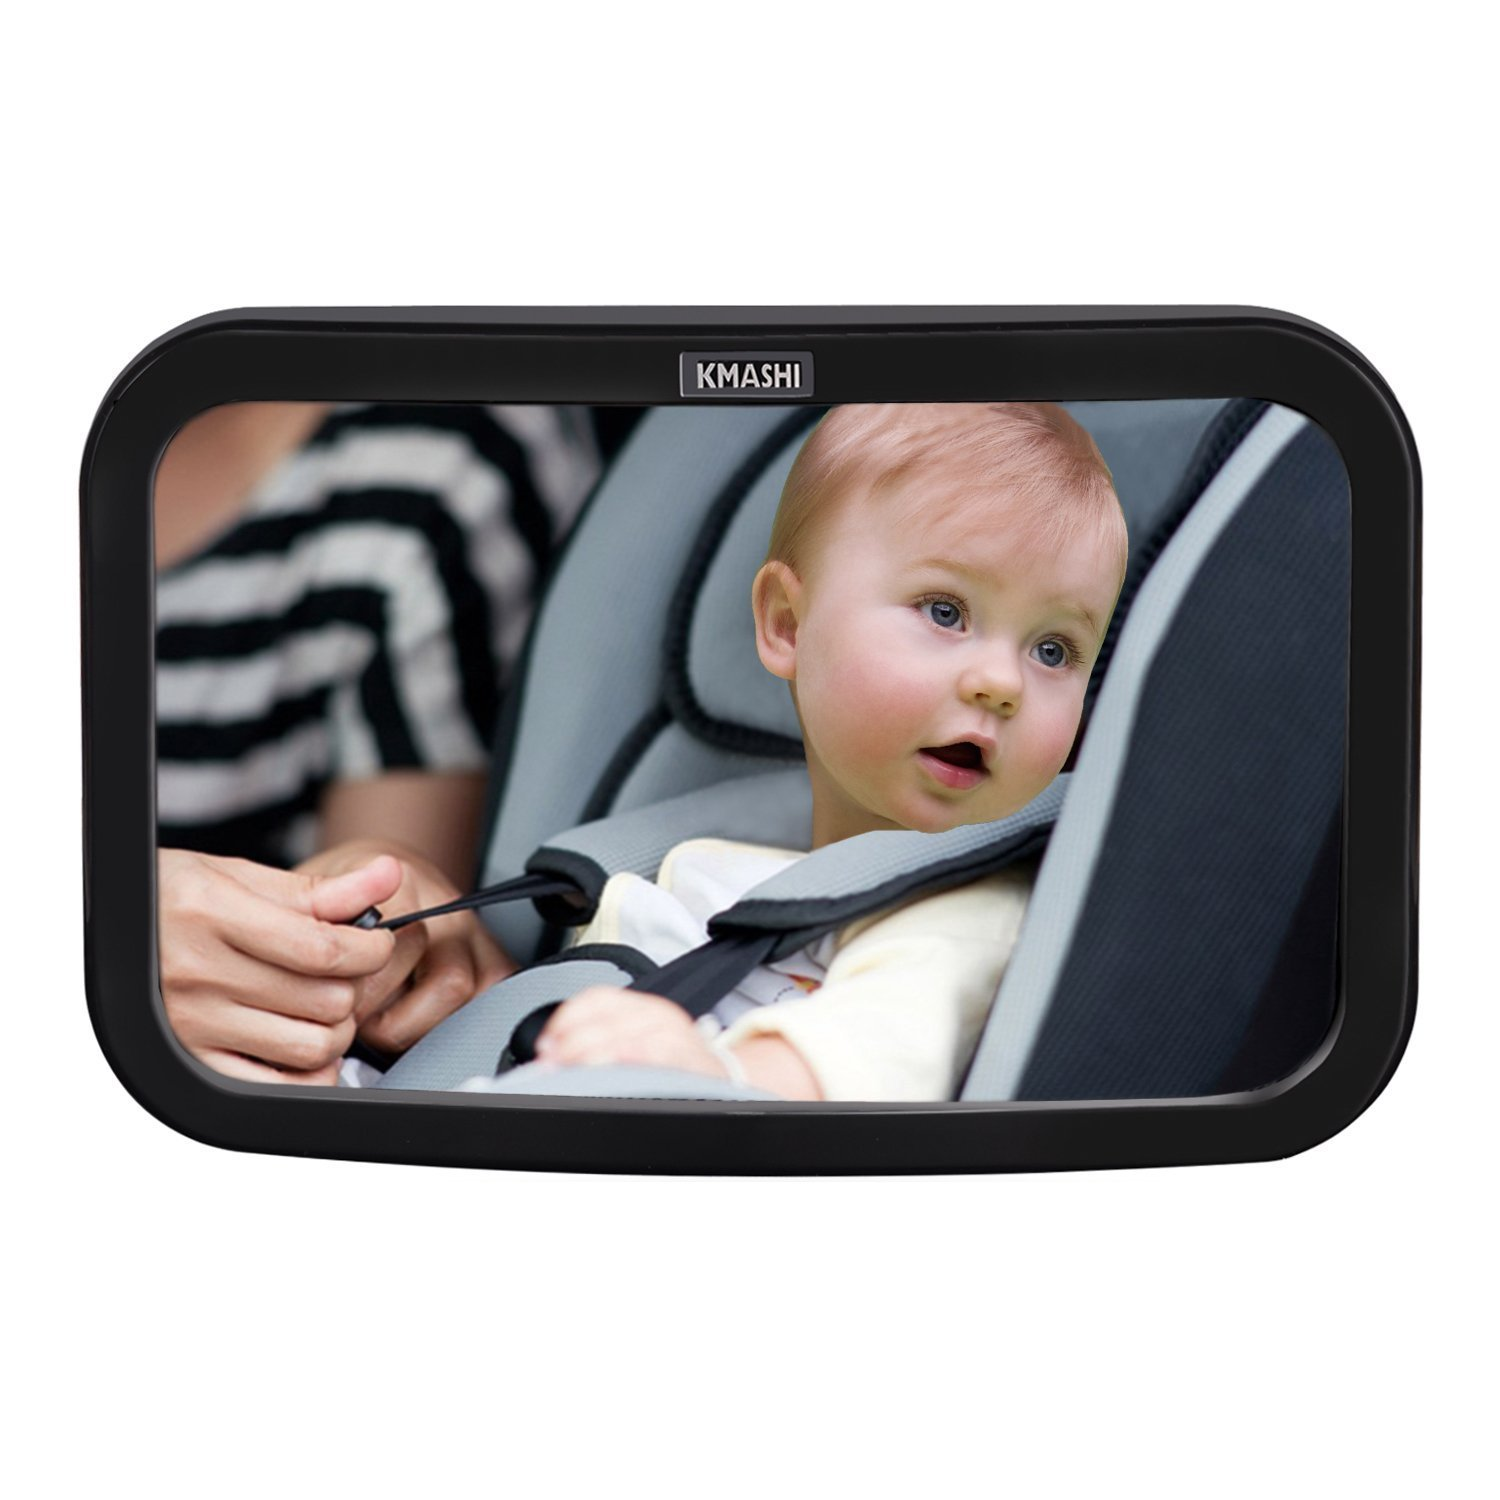 KMASHI Baby Car Mirror Back Seat Mirror Wide Convex Shatterproof Glass Adjustable Auto Rear View Safety Mirrors